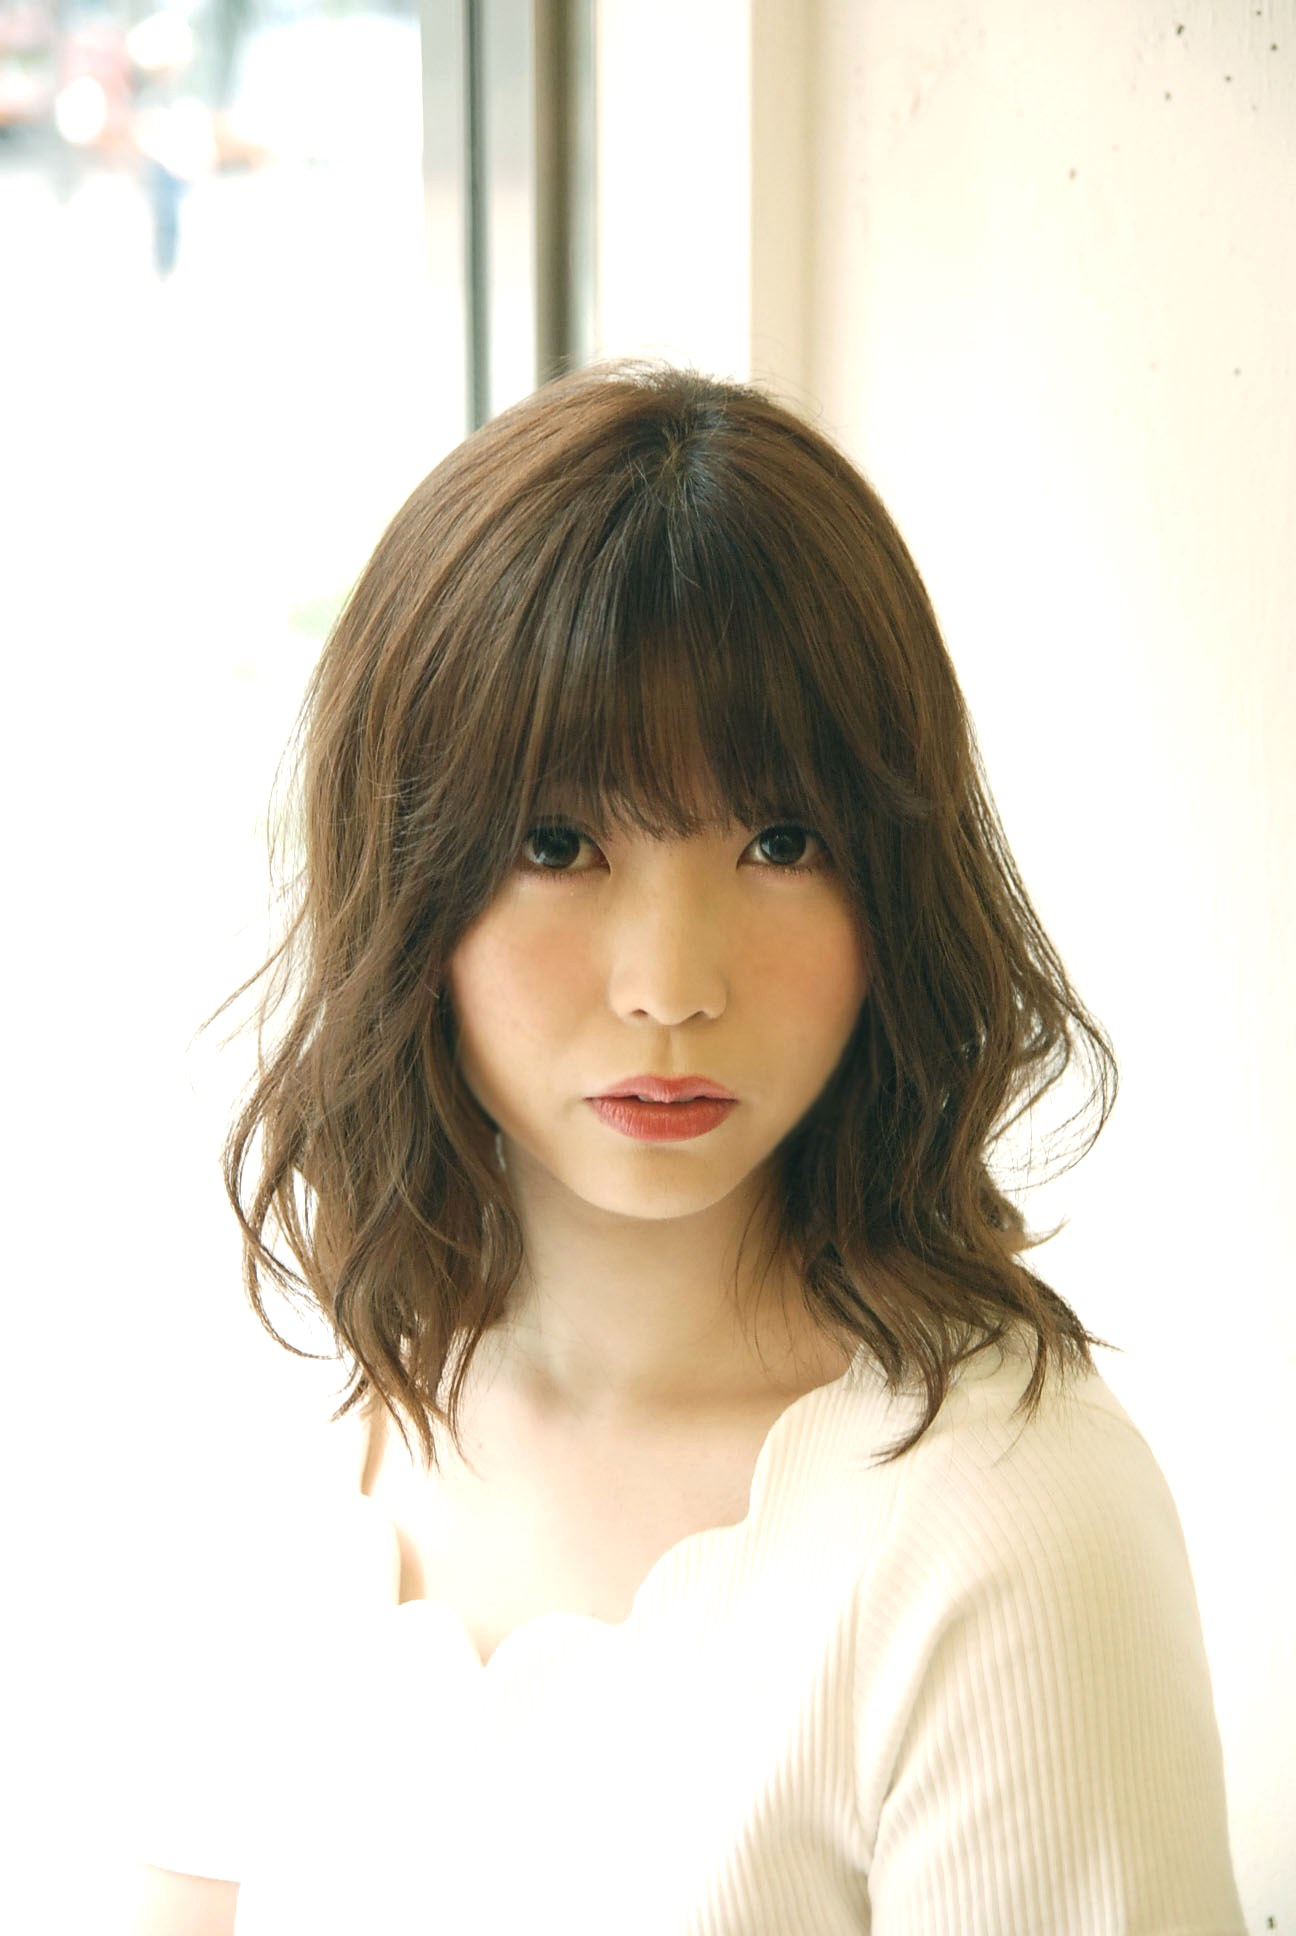 hairstyle62